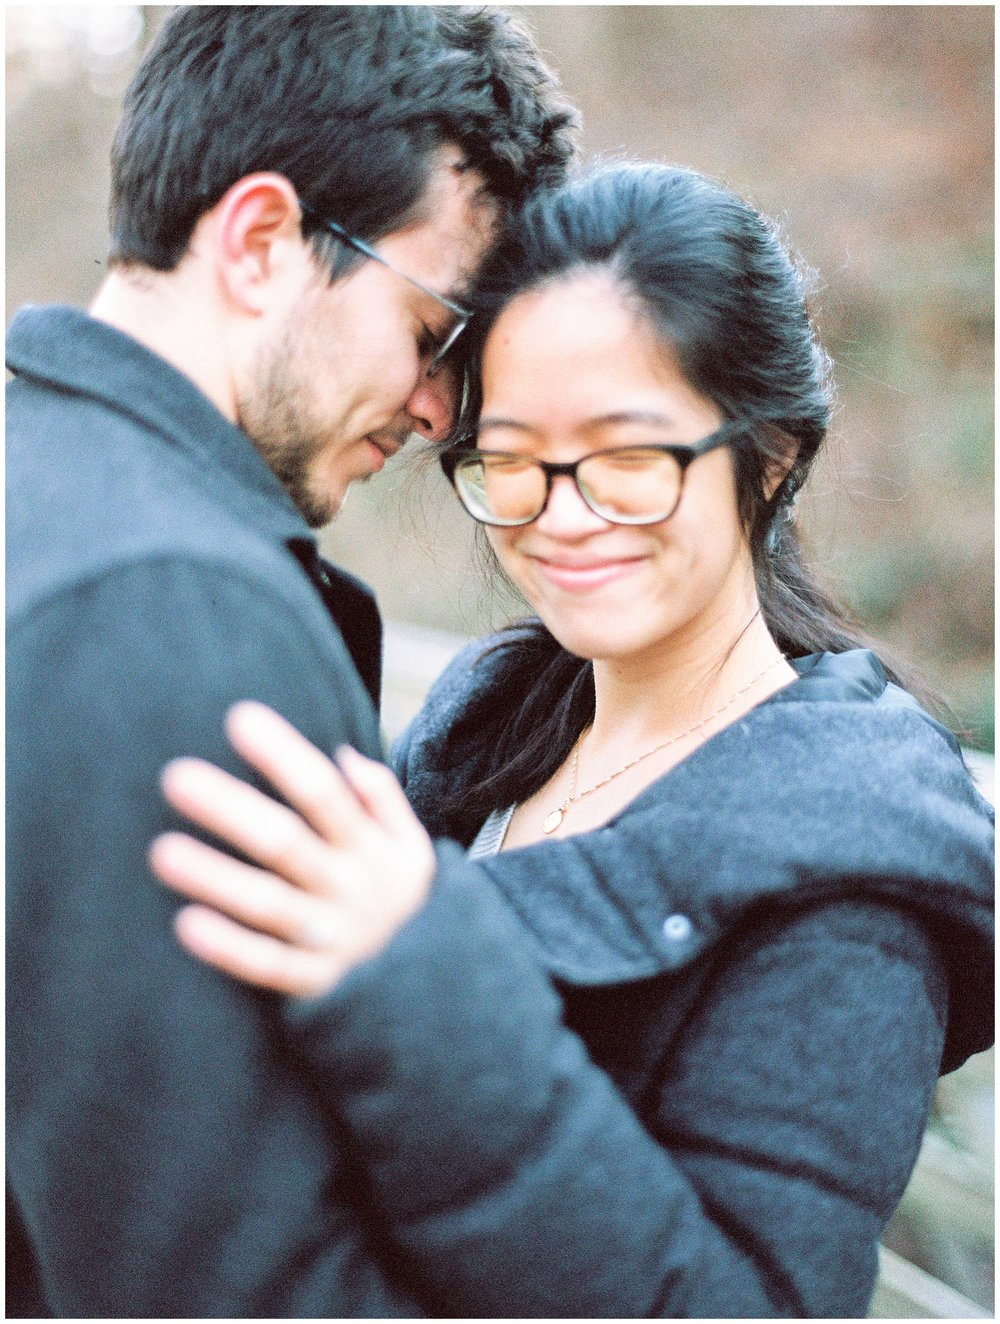 Mclean-VA-Wedding-Photos_Lifestyle-Engagement-Session_Jessica-Green-Photography-27.jpg